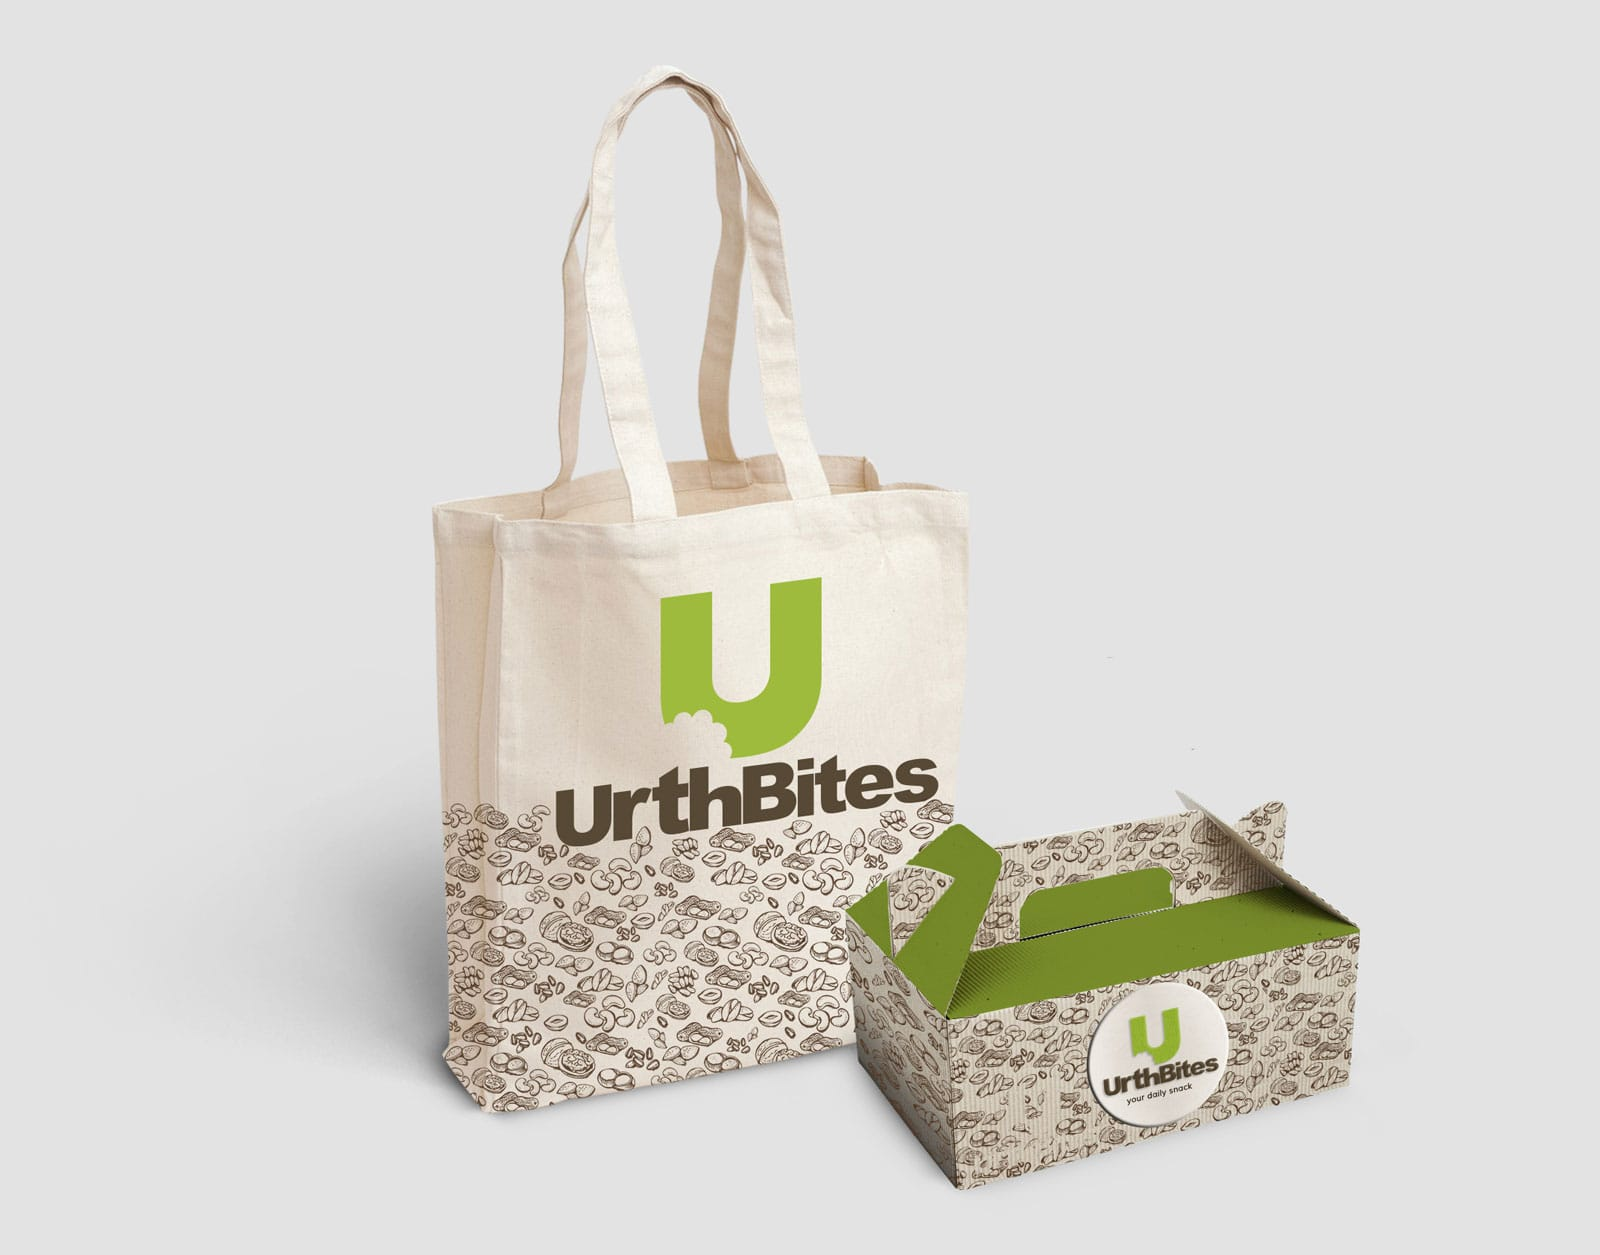 Urth Bites Grocery Bag Design